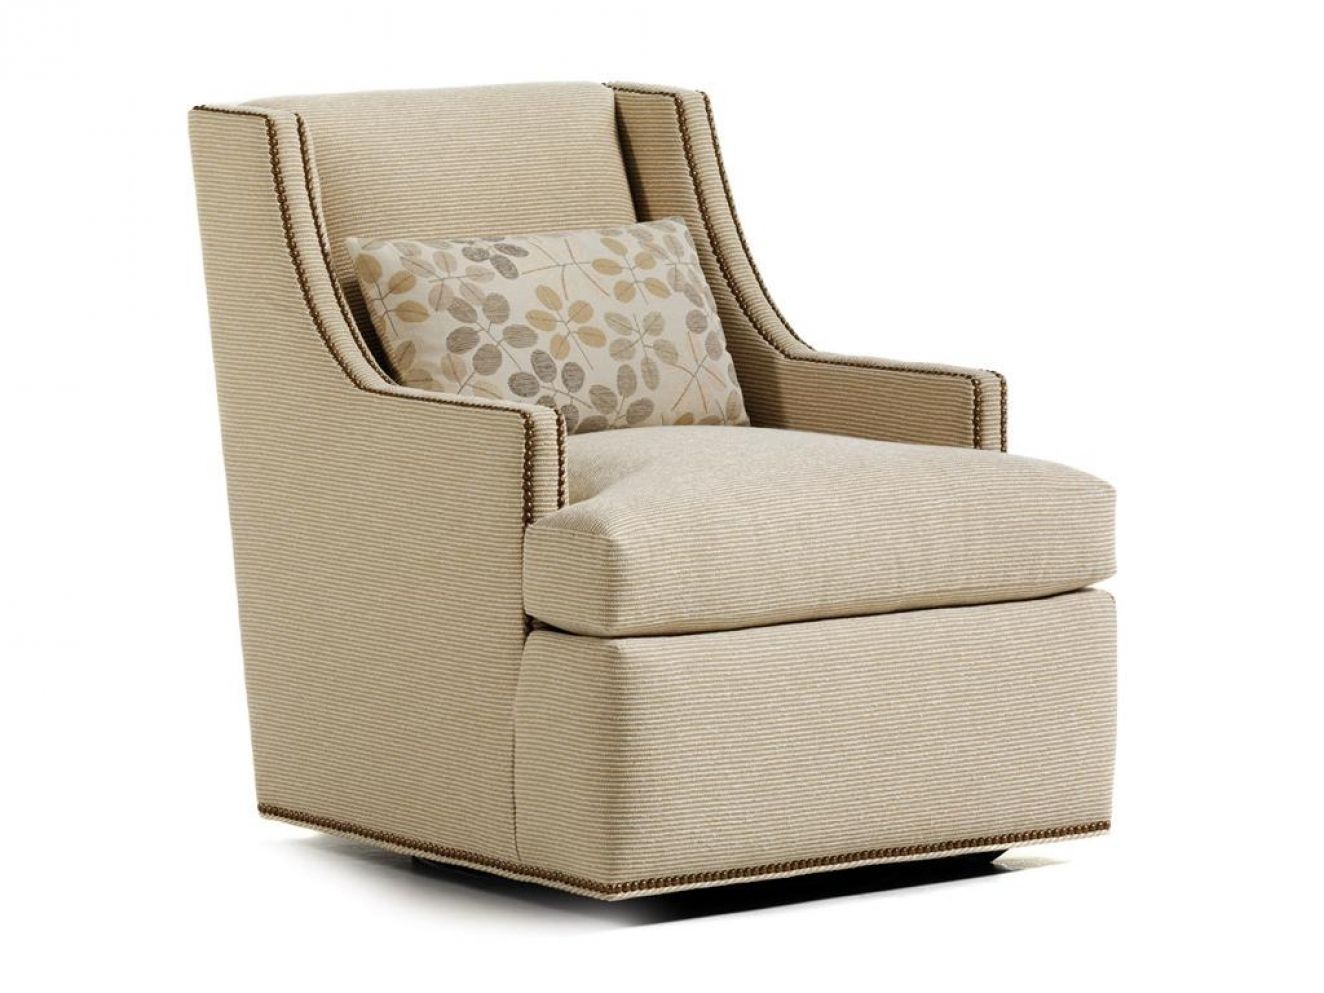 swivel living room chair curtains for windows chairs small decor ideas on a budget check more at